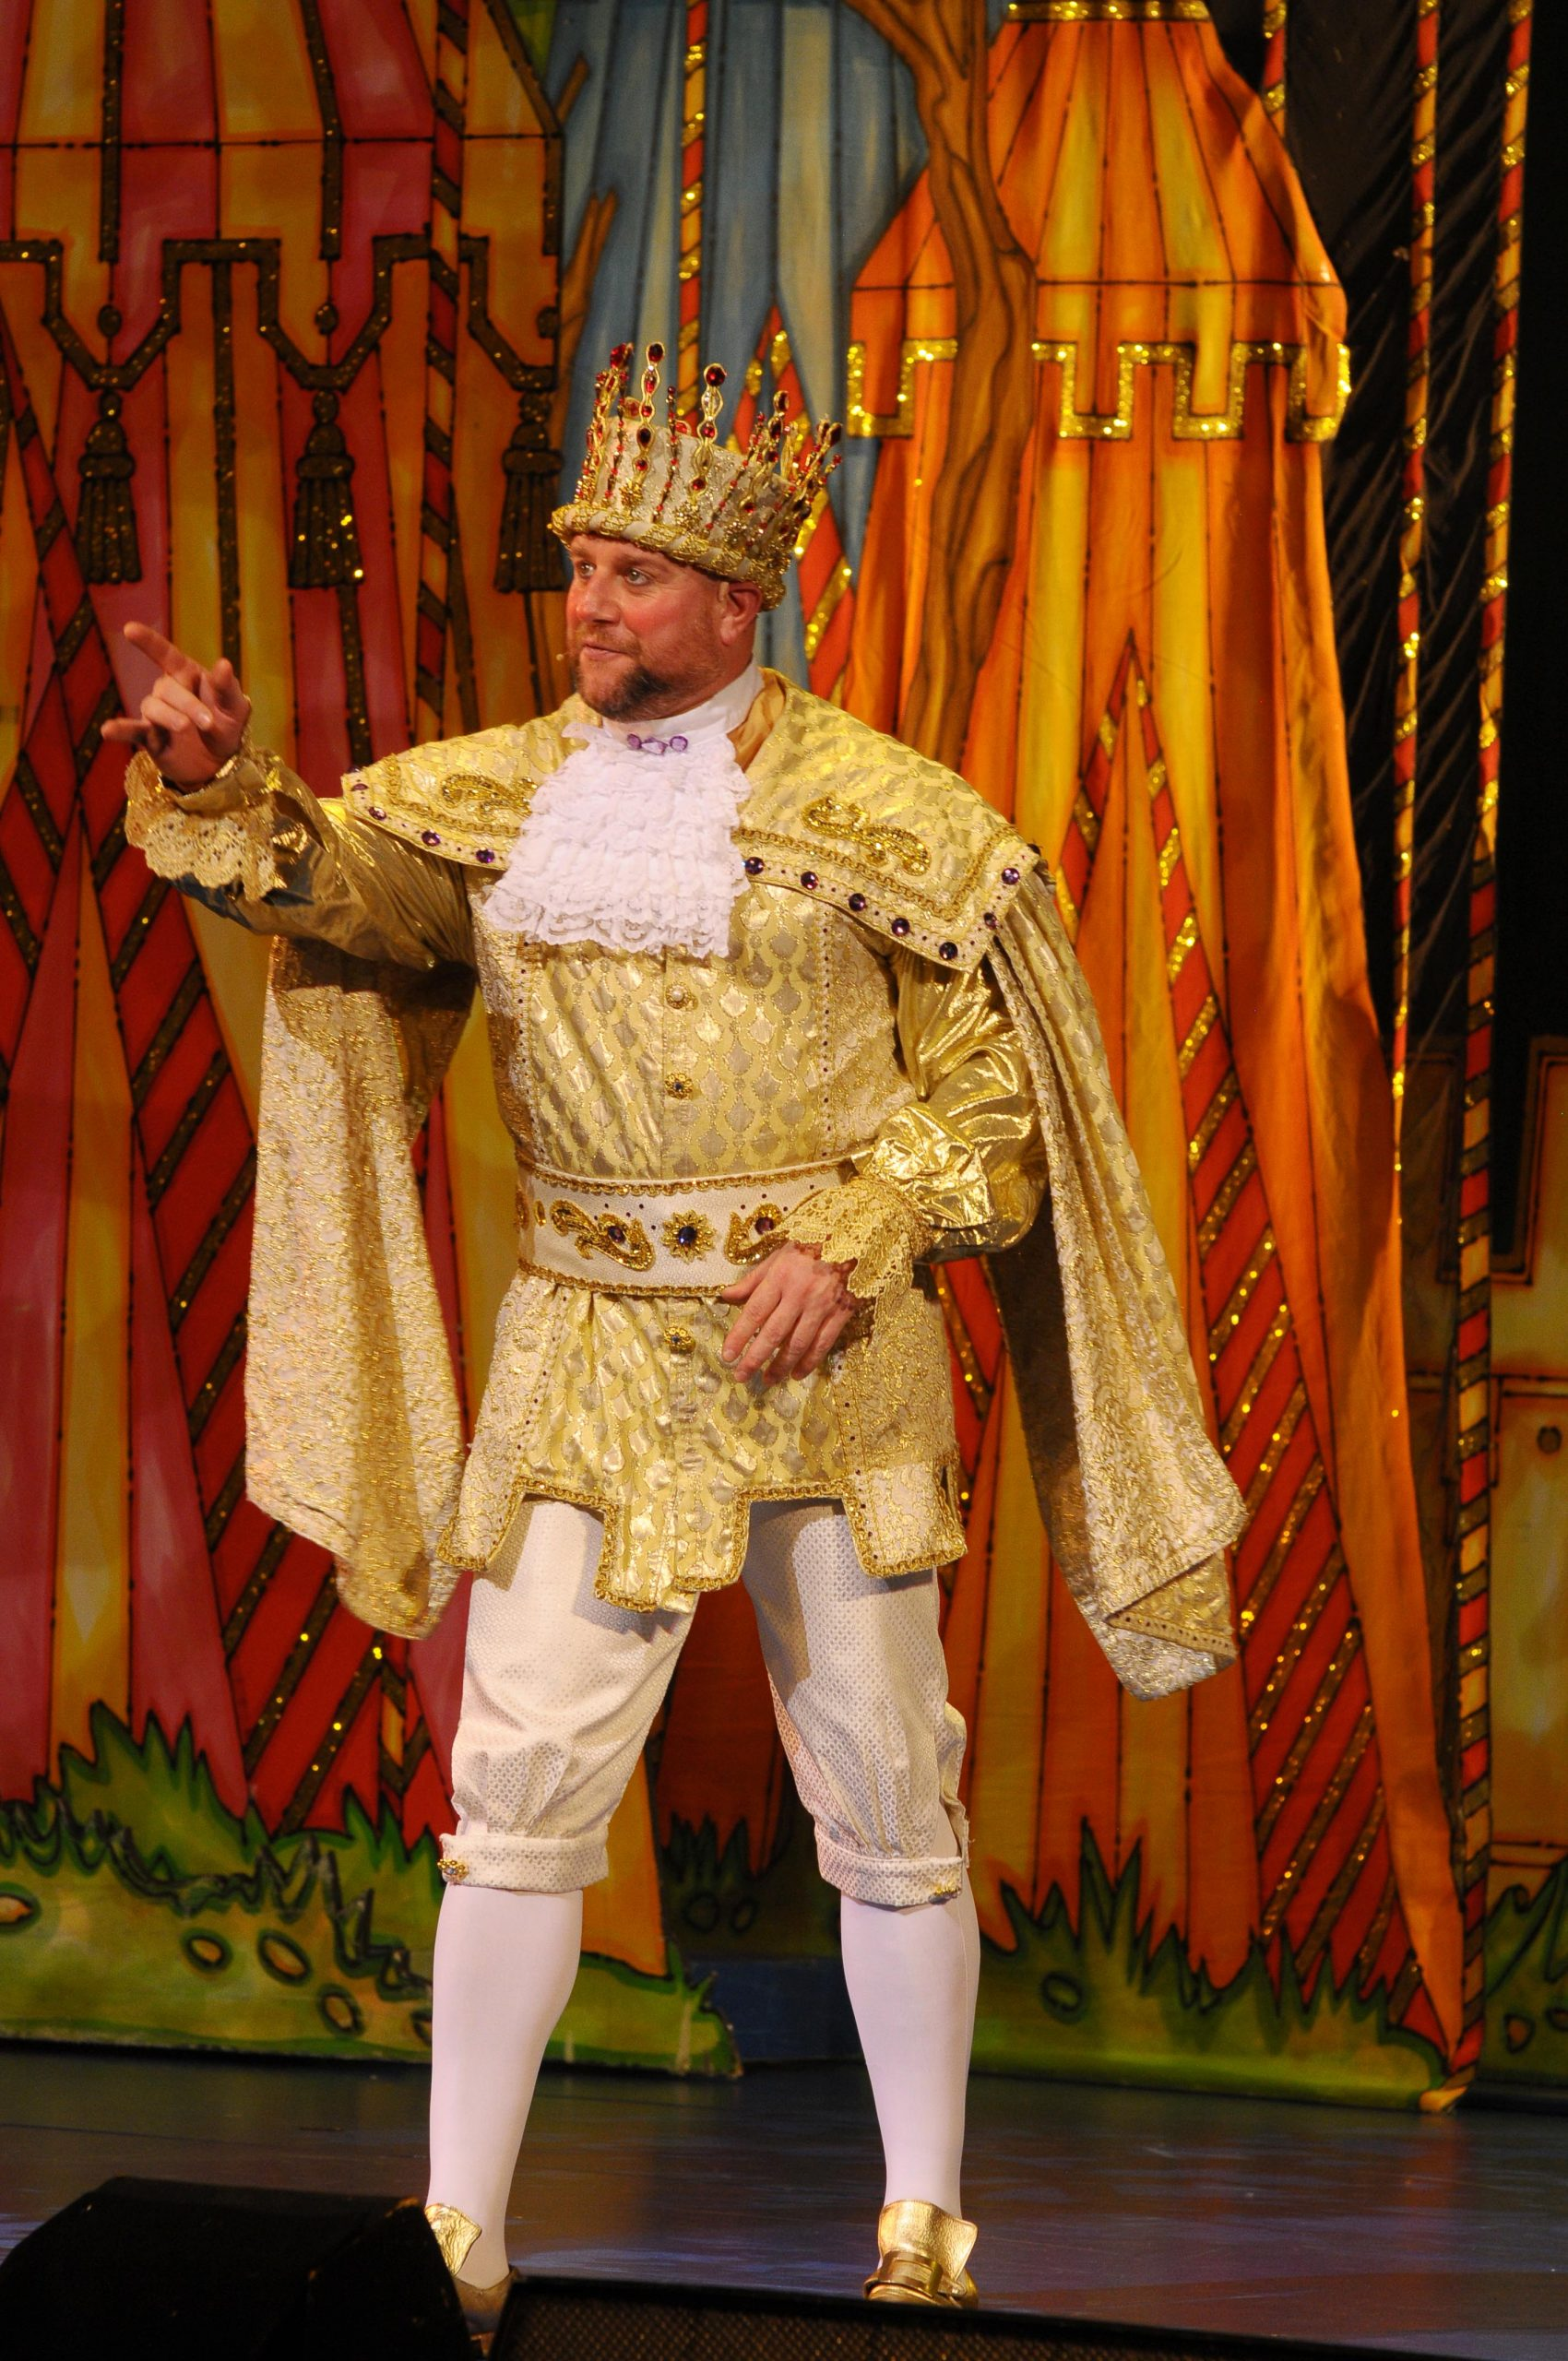 sleeping beauty panto, kai owen as the king